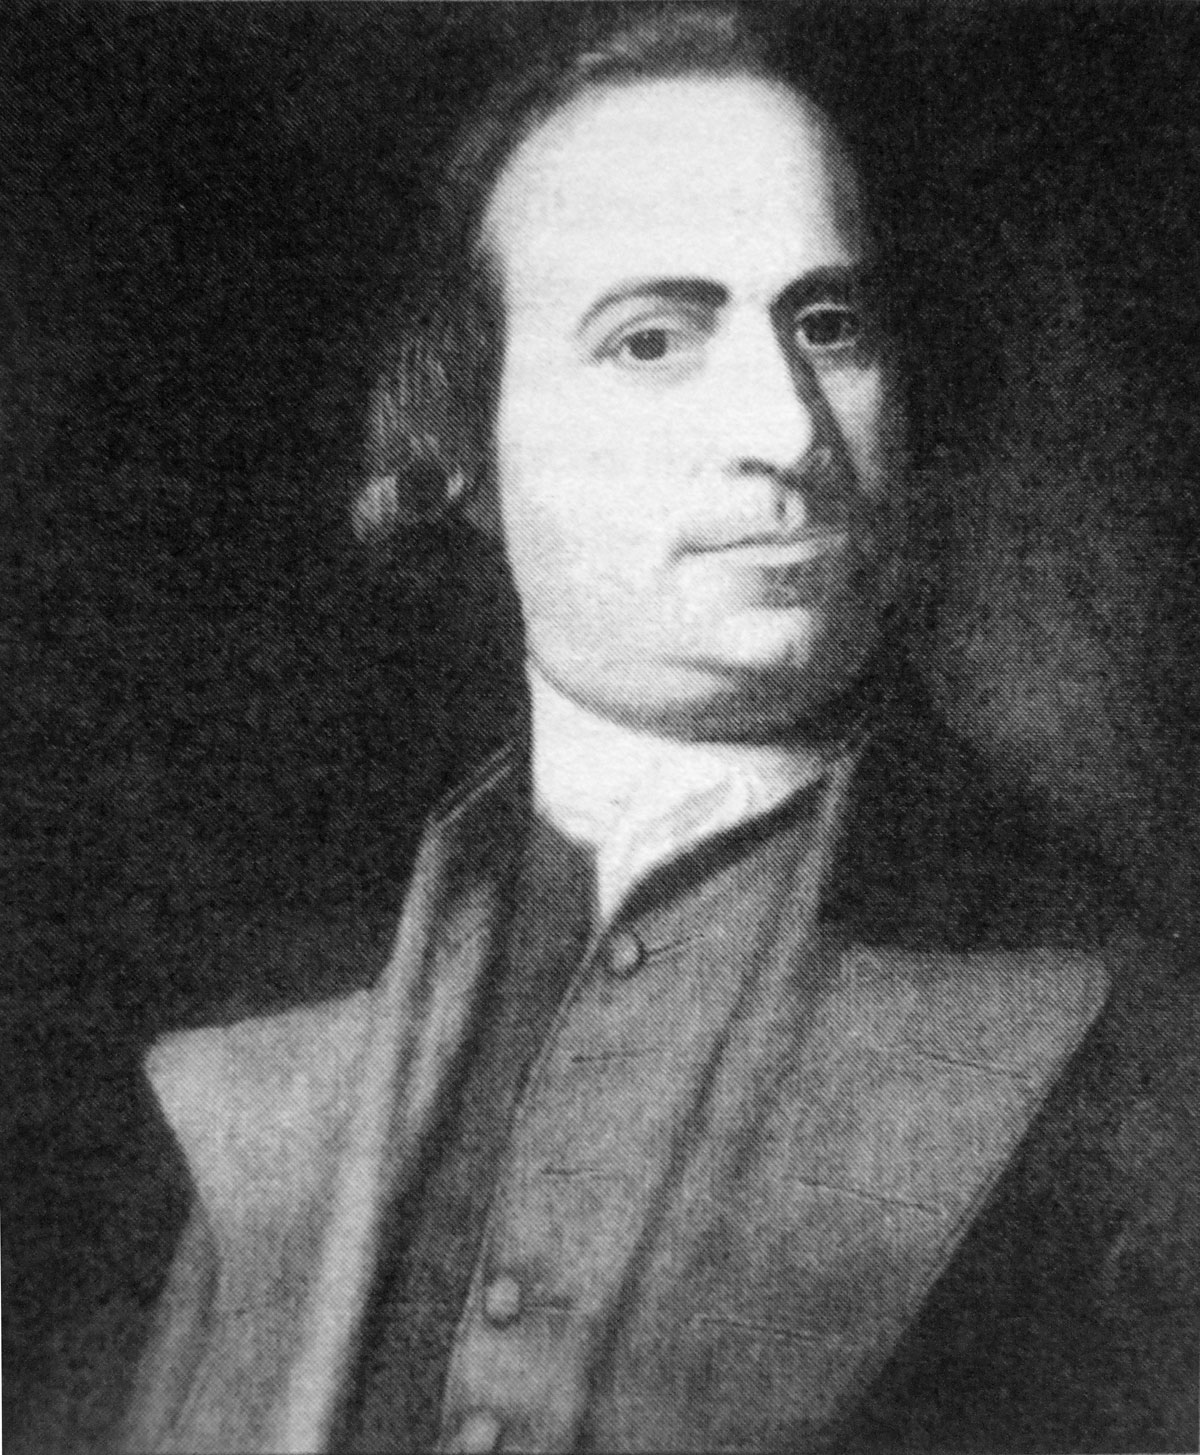 a biography of american statesman samuel adams Samuel adams (september 27 1722 - october 2, 1803), signer of the declaration of independence, was an american statesman, political philosopher, and one of the founding fathers of the united states.